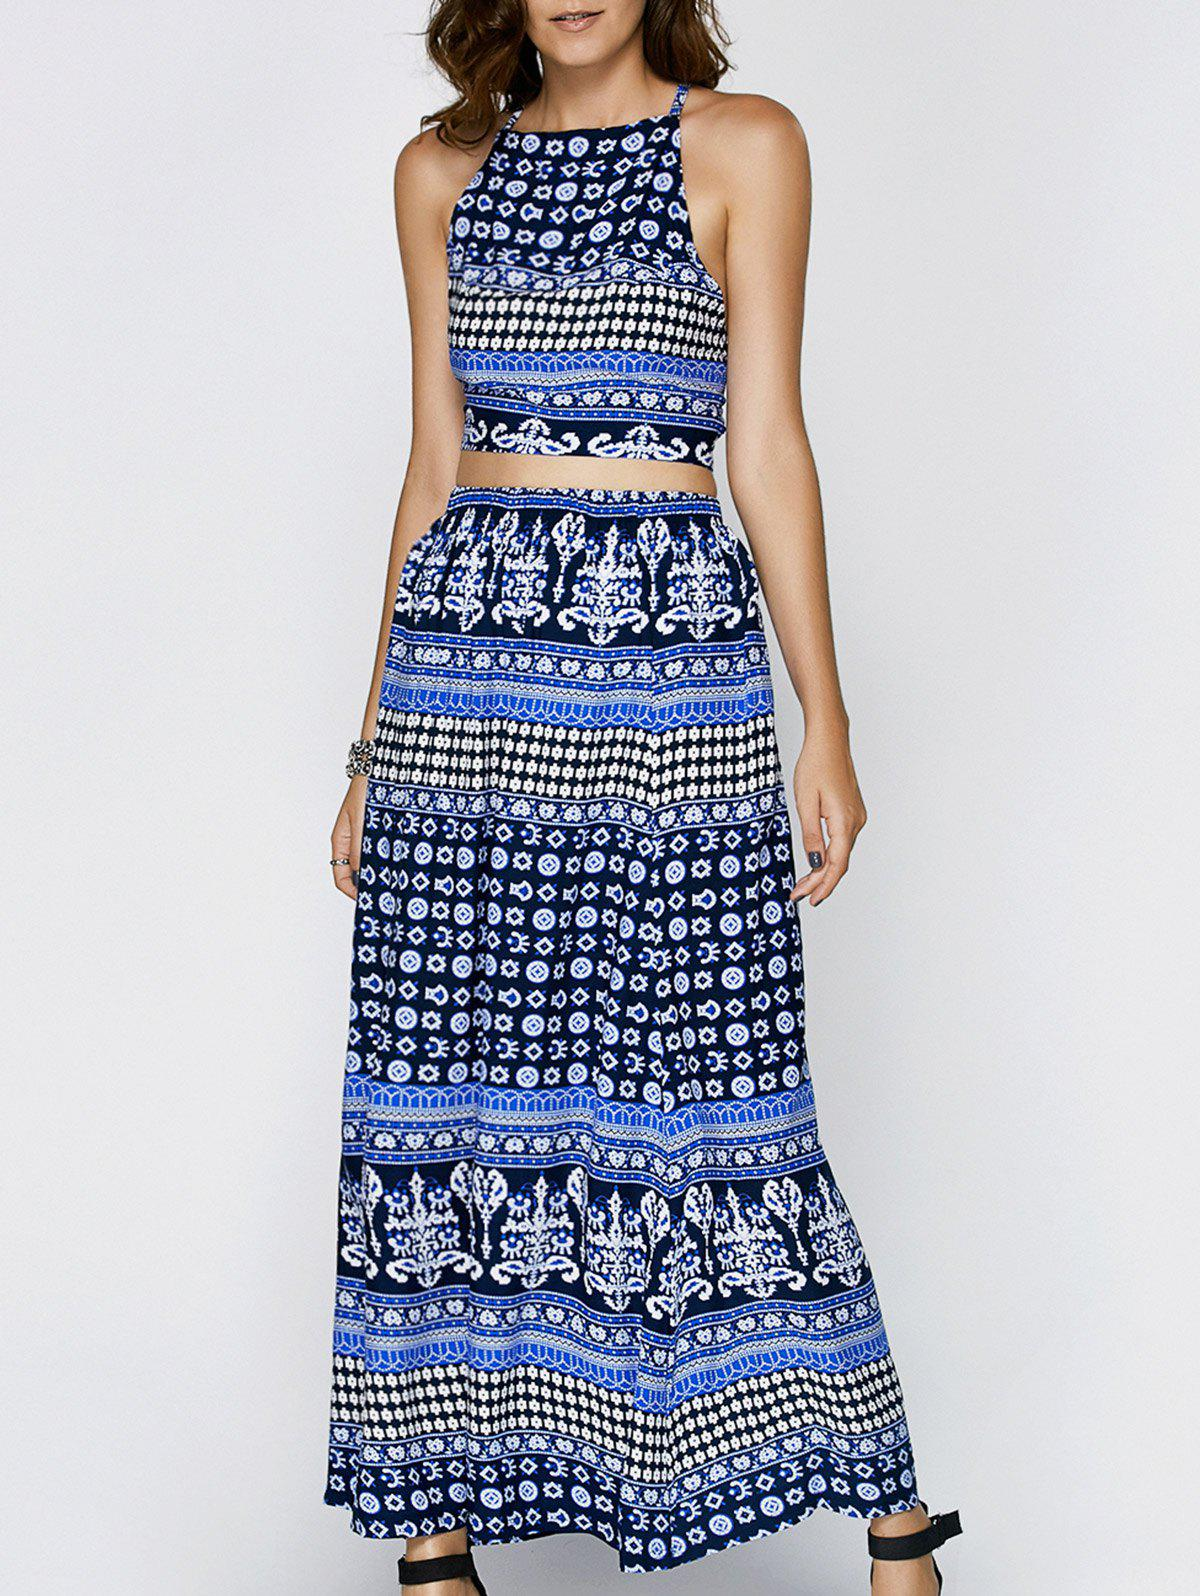 Stylish Women's Printed Backless Top + Maxi Skirt Twinset - BLUE L